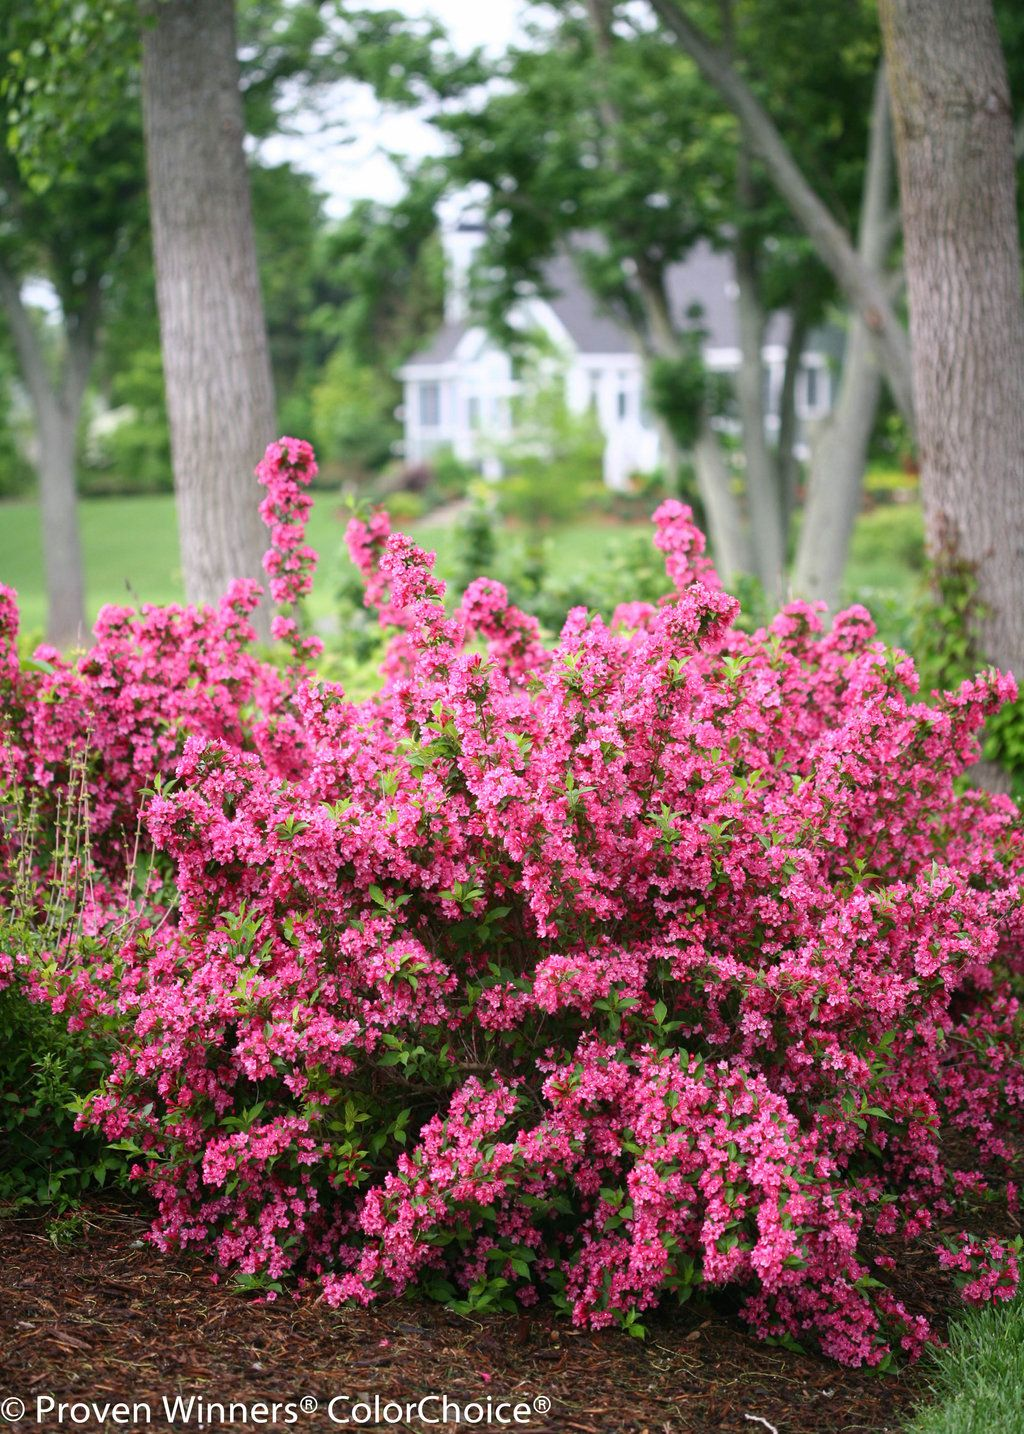 Sonic Bloom Pink Is A Reblooming Weigela With Hot Pink Buds That